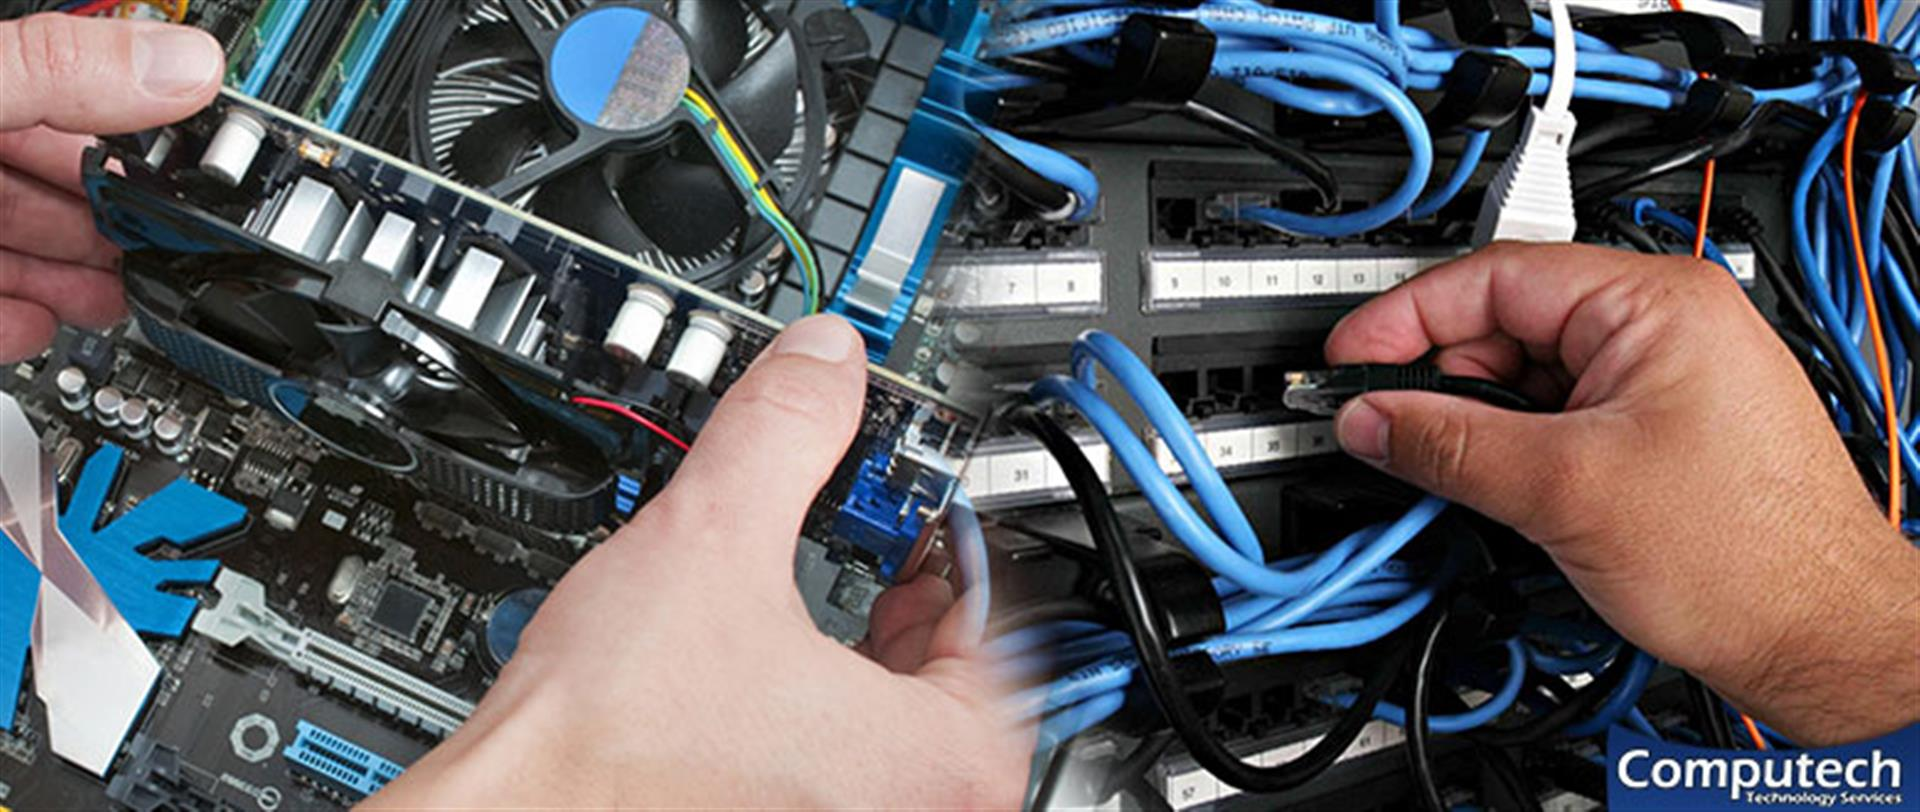 Alamo Tennessee Onsite Network Repair, Voice & Data Cabling Services